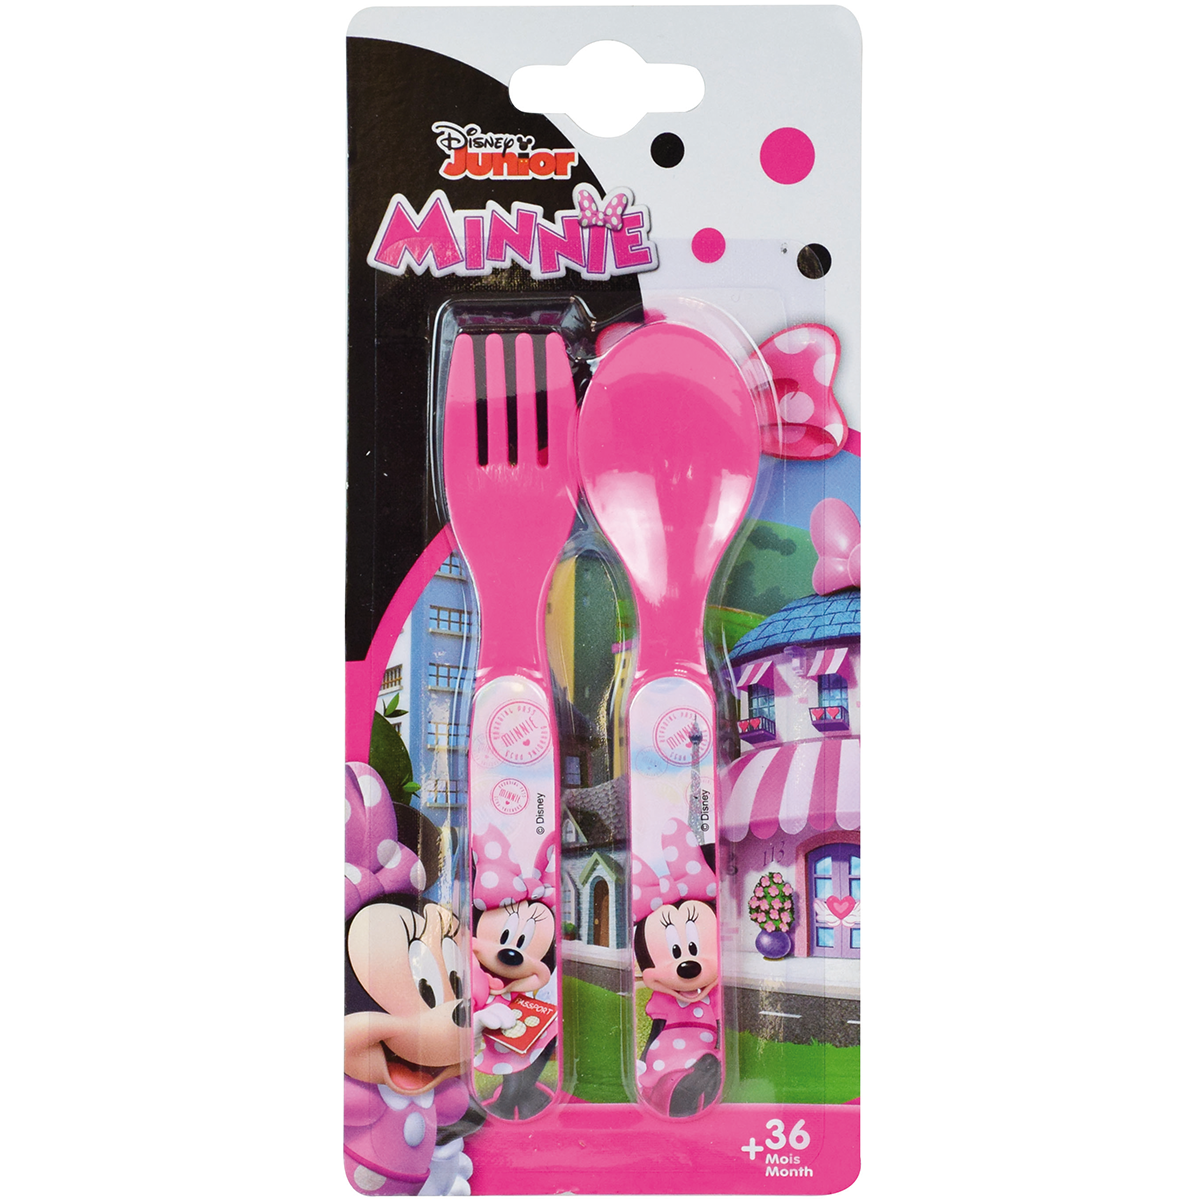 Disney Minnie Mouse Cutlery Spoon and Fork 2 pieces - Polypropylene